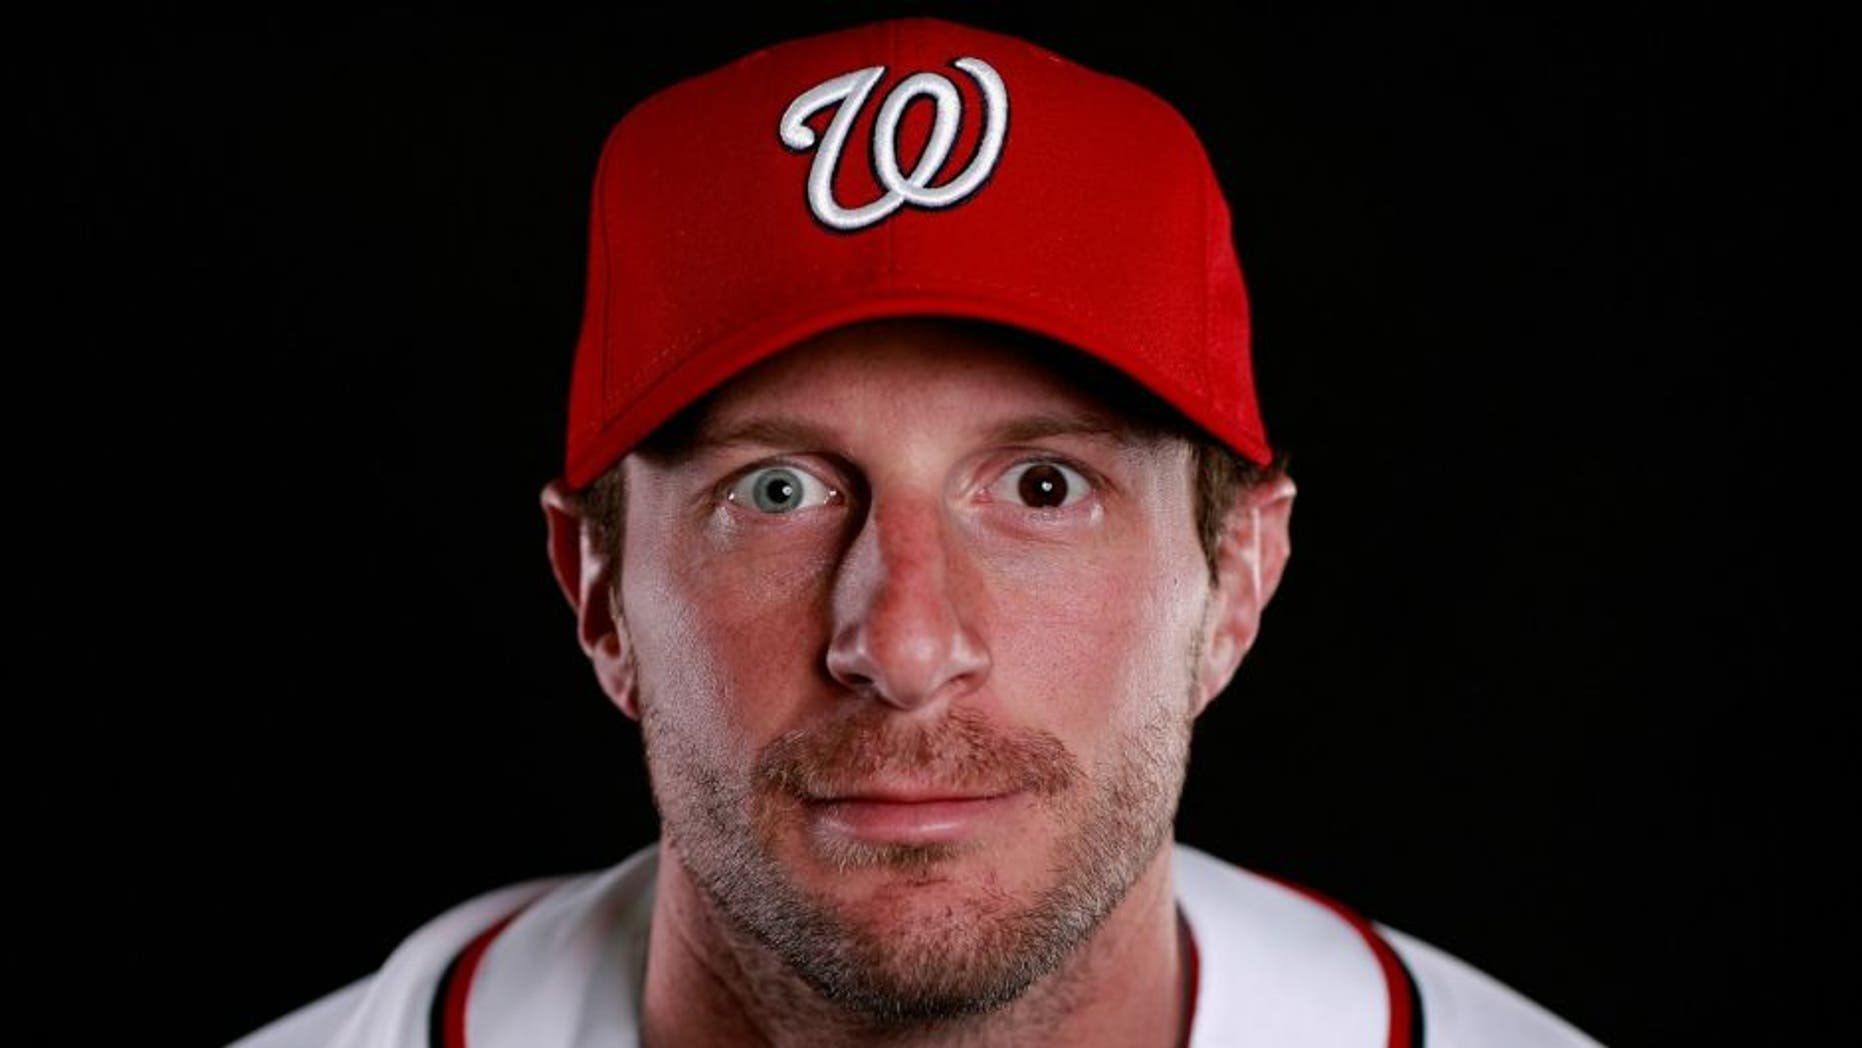 poses for a portrait at Spring Training photo day at Space Coast Stadium on February 28, 2016 in Viera, Florida.,VIERA, FL - FEBRUARY 28: Max Scherzer #31 of the Washington Nationals poses for a portrait at Spring Training photo day at Space Coast Stadium on February 28, 2016 in Viera, Florida. (Photo by Chris Trotman/Getty Images)